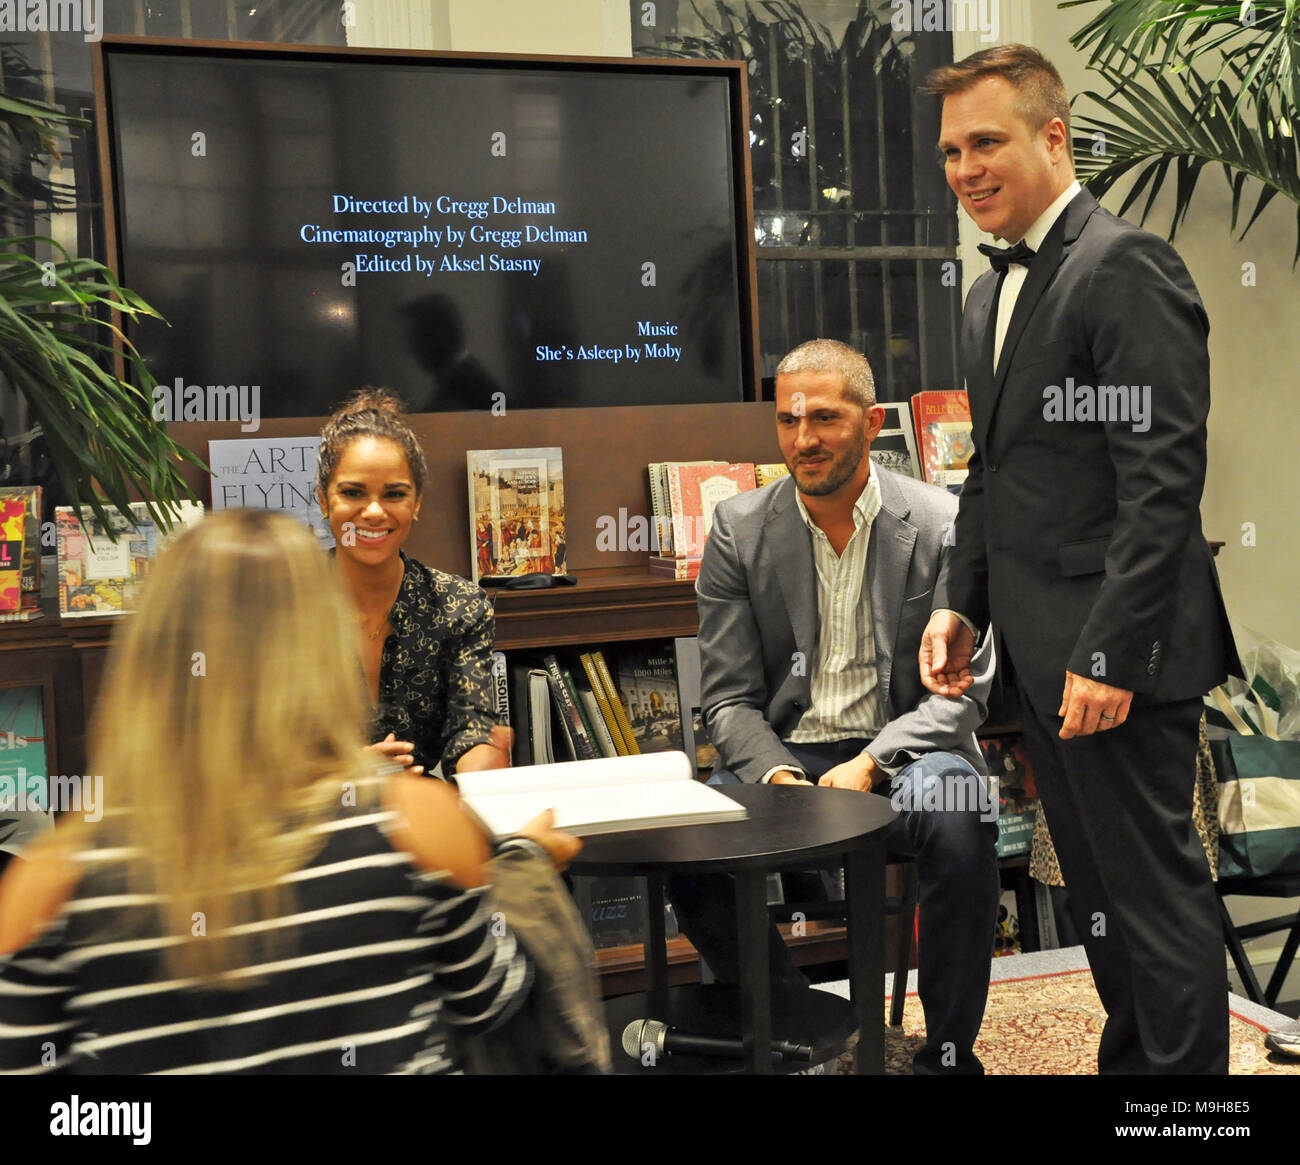 Rizzoli Bookstore, New York, NY. New York. Misty Copeland greets fans at a book signing. September 26 2016. @ Veronica Bruno / Alamy - Stock Image